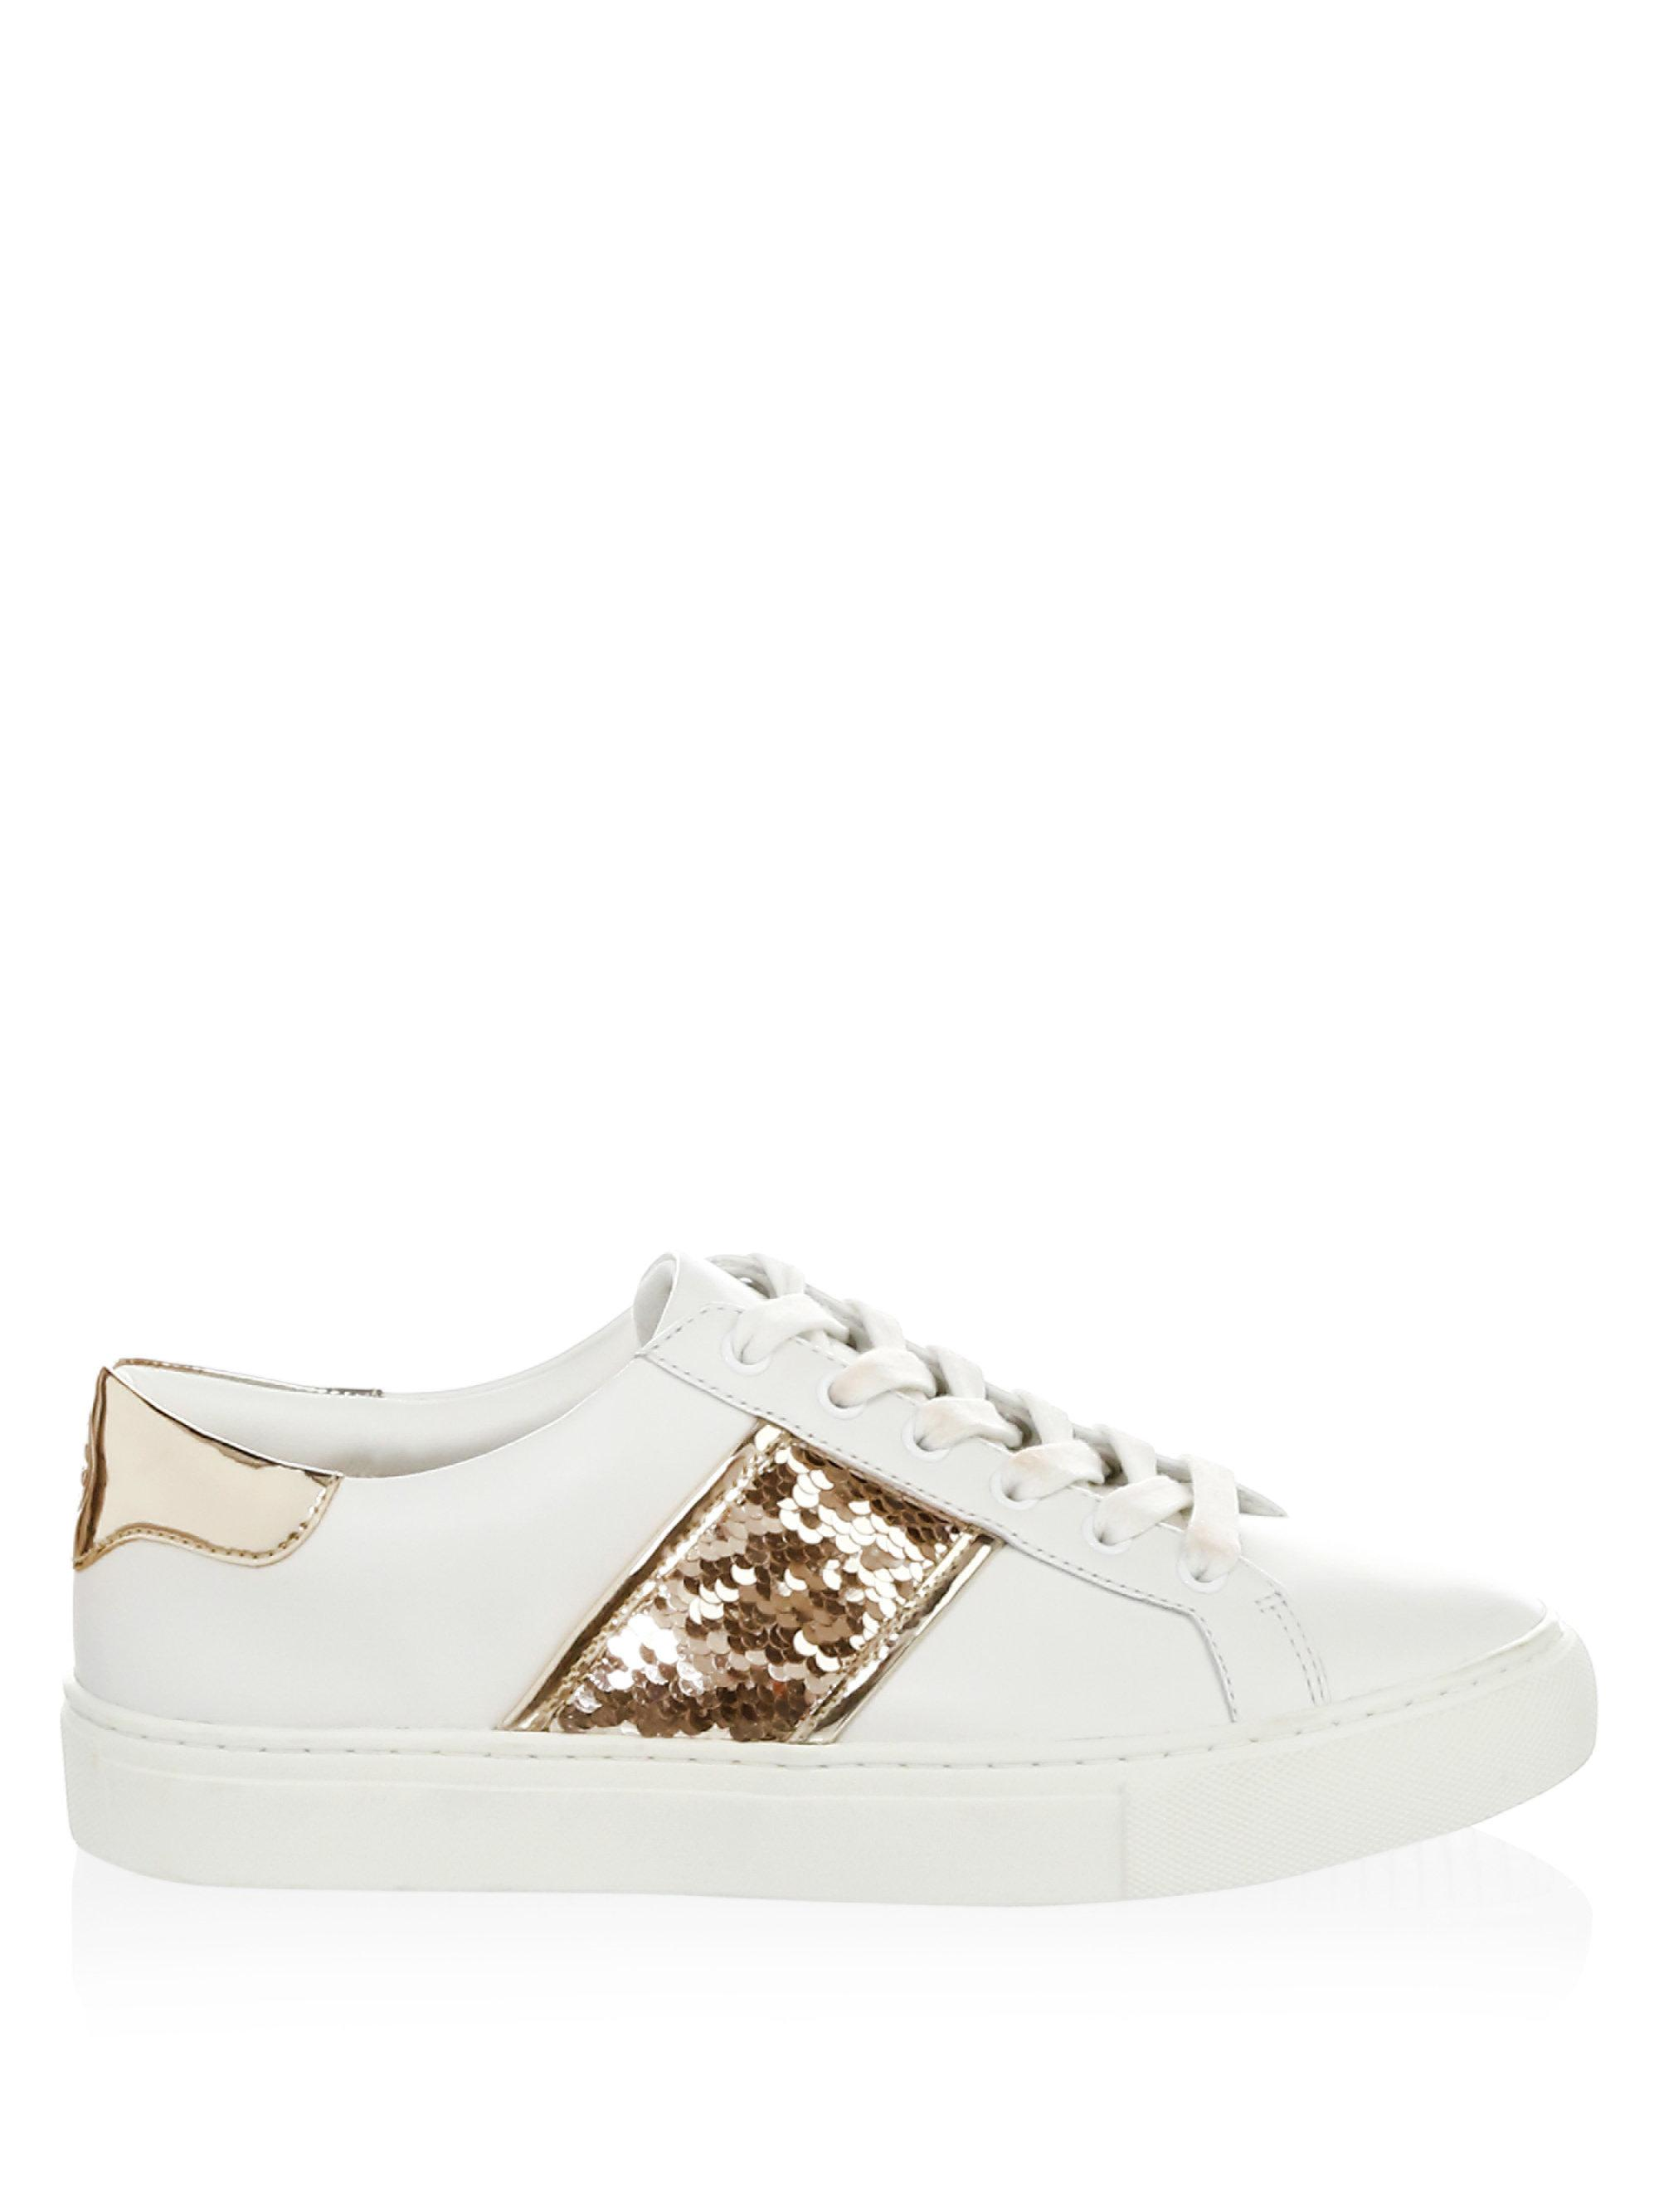 Tory Burch Carter Sequin Leather